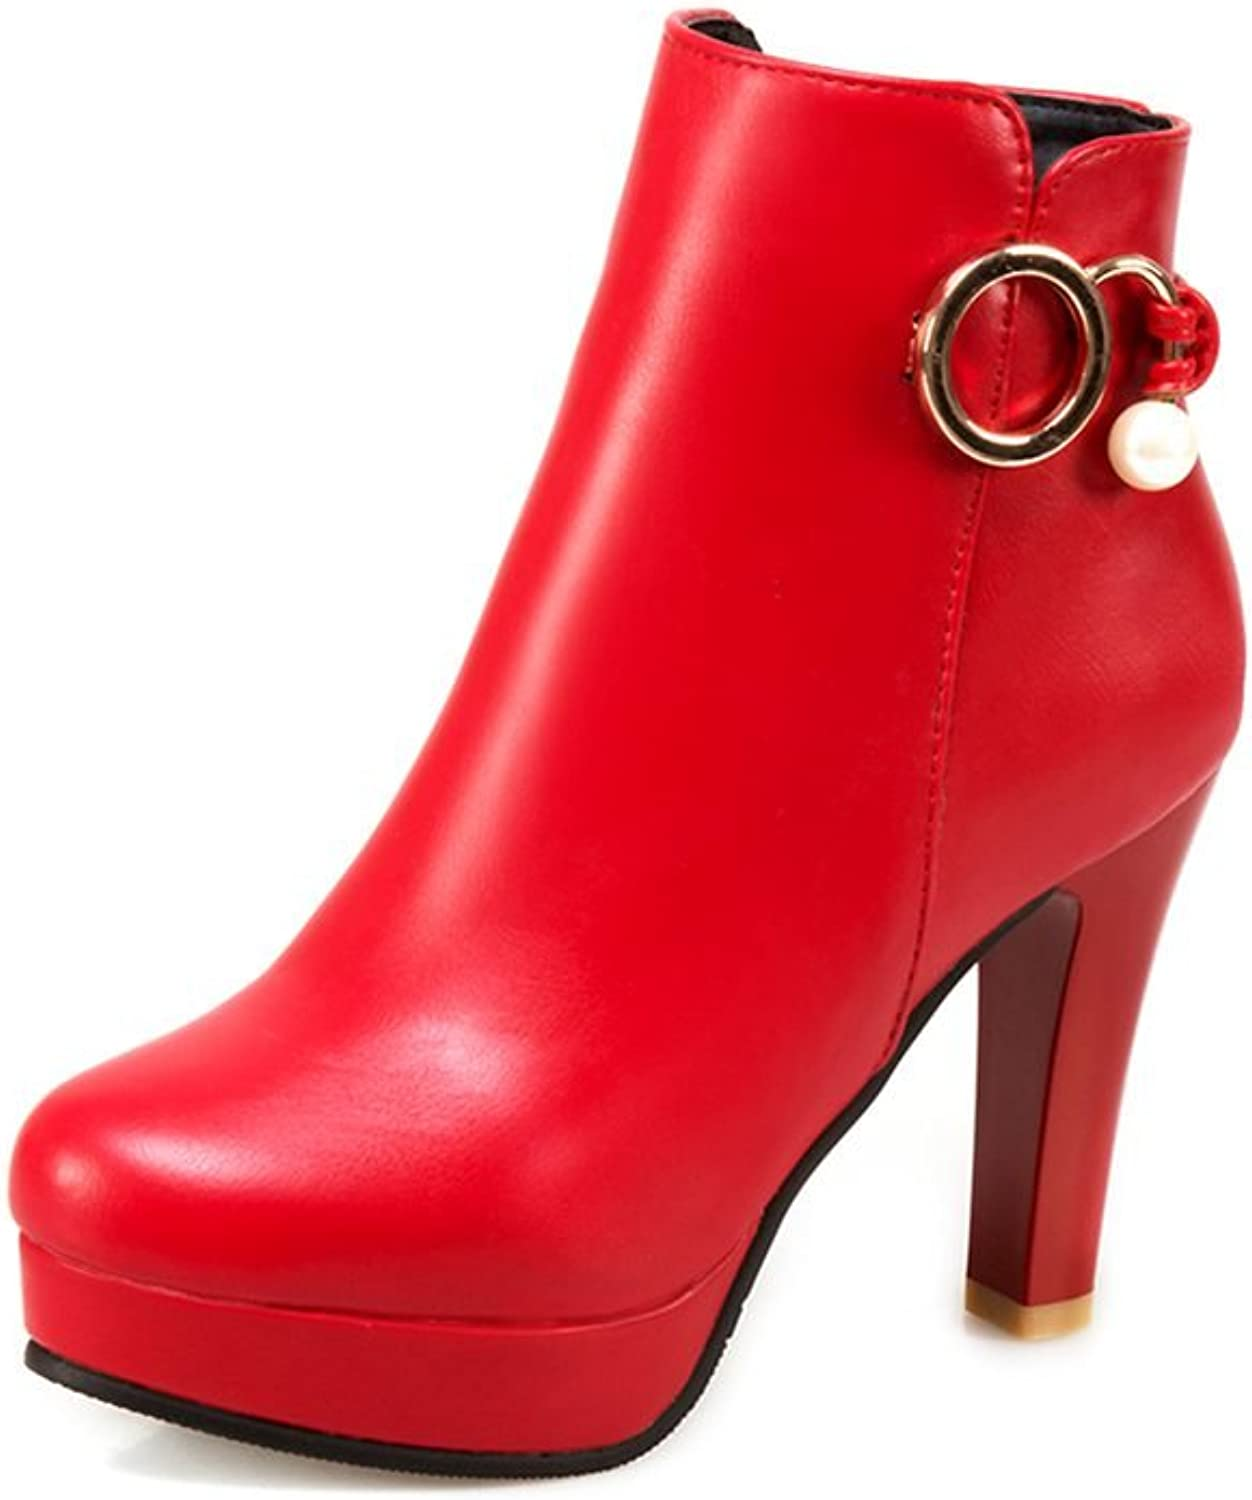 DecoStain Women's Metal Ring High Heel Ankle High Boots